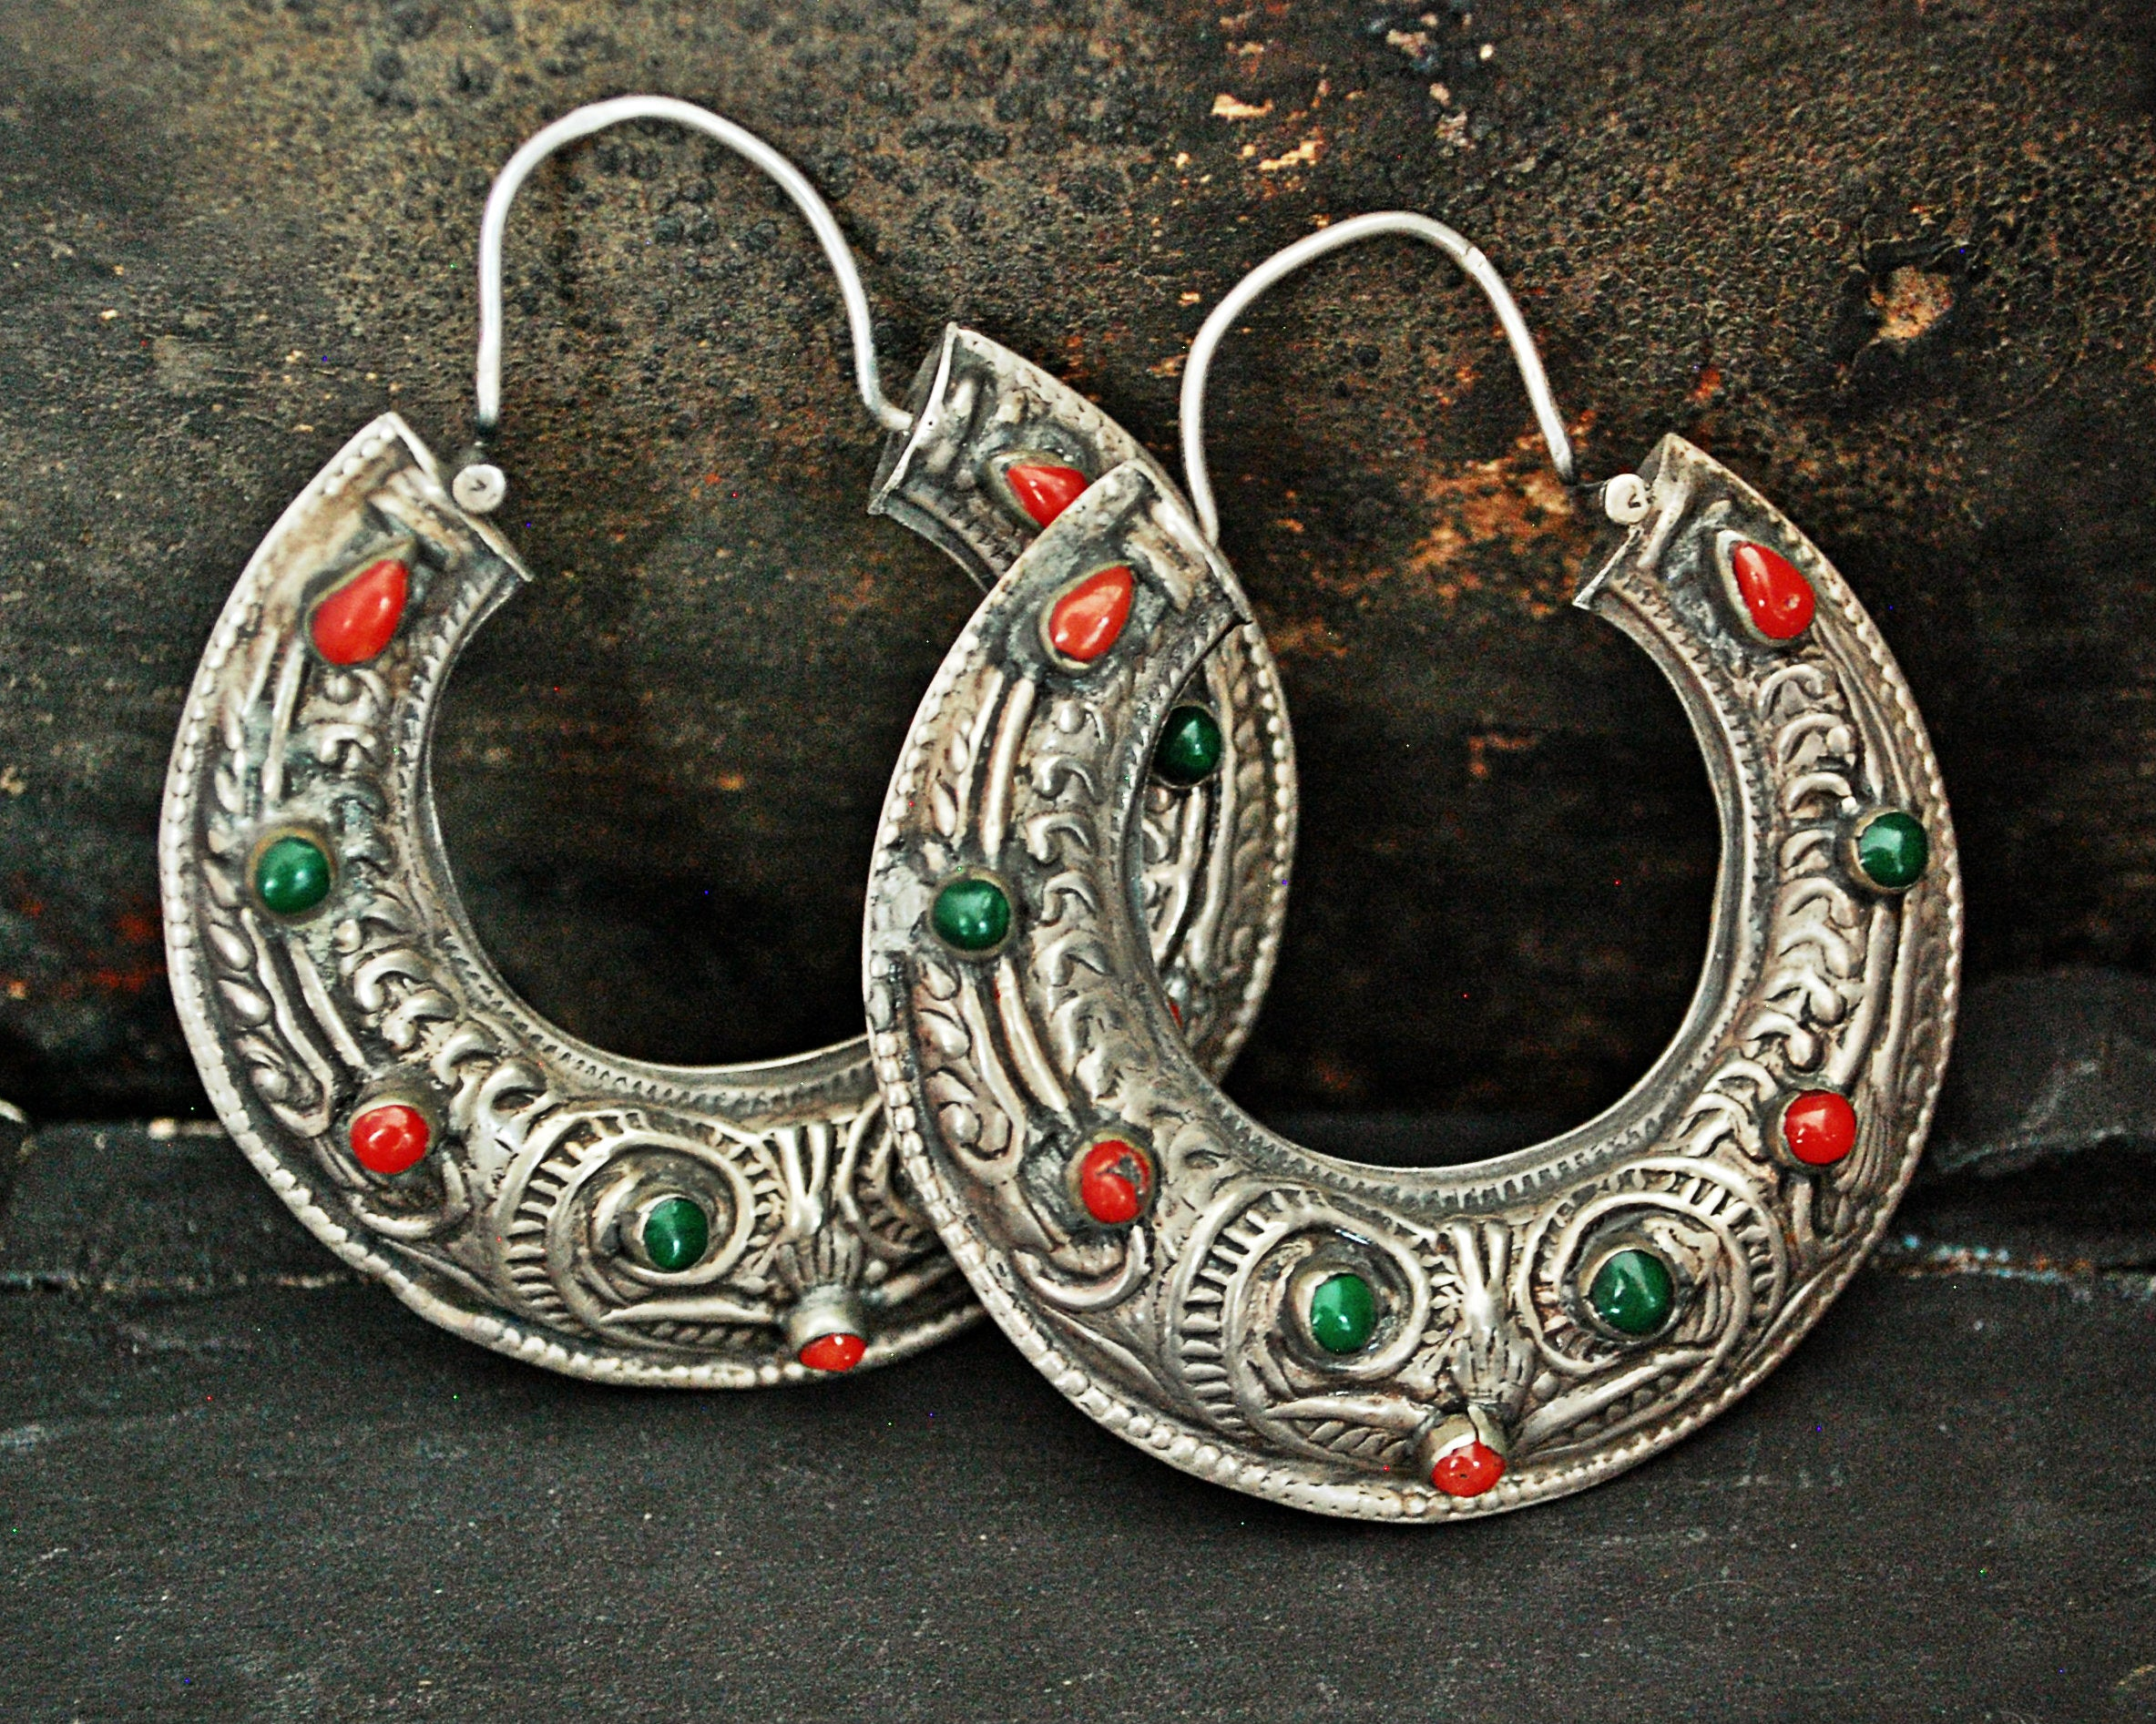 Stunning Ethnic Hoop Earrings with Coral, Carnelian and Malachite